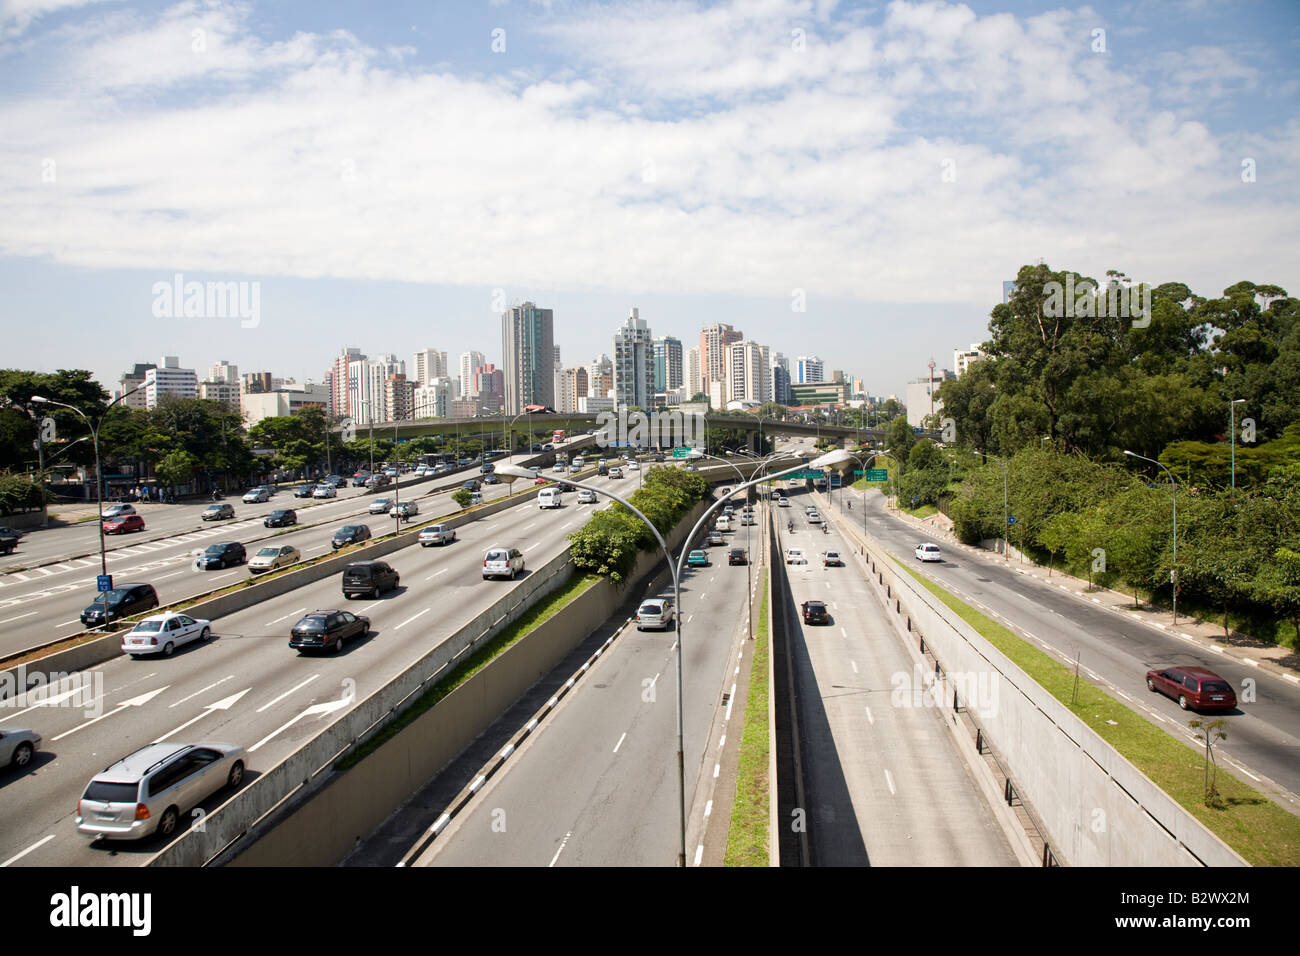 Sao Paulo Traffic and skyline, Brazil - Stock Image